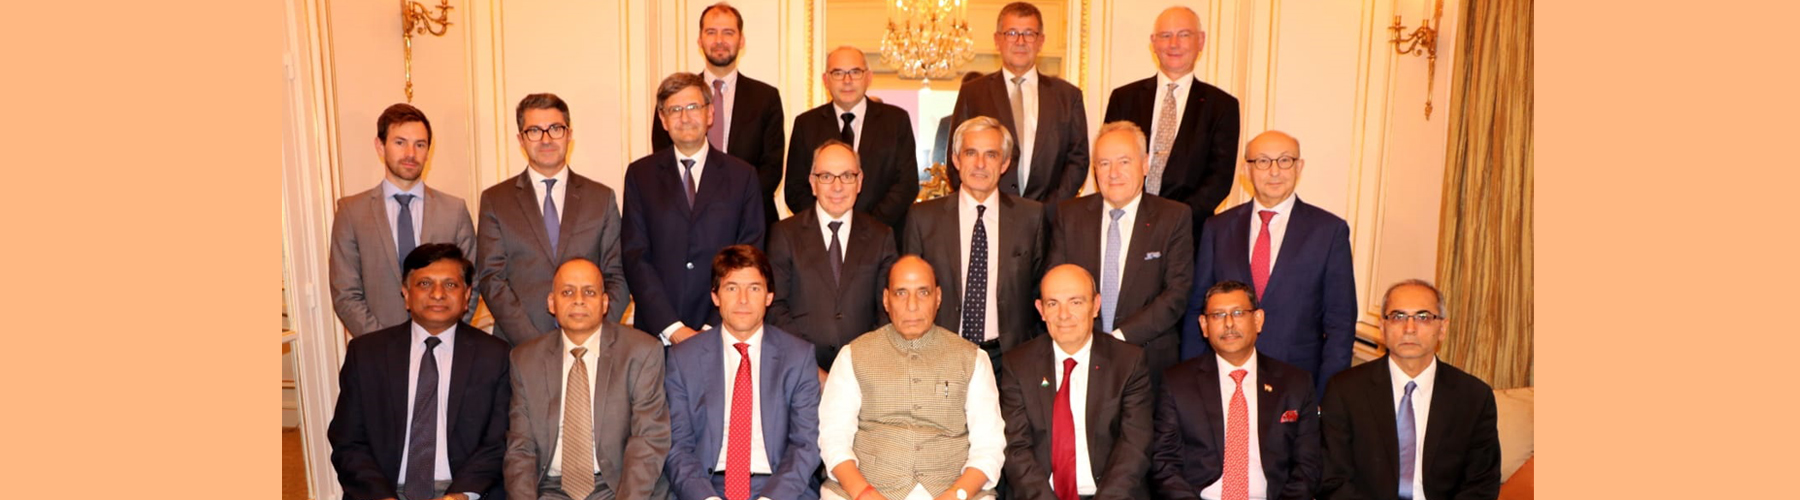 Raksha Mantri Shri Rajnath Singh with the CEOs of French Defence Industries in Paris on October 09, 2019. Also seen in the picture are Defence Secretary Dr Ajay Kumar and Ambassador of India to France Shri Vinay Mohan Kwatra